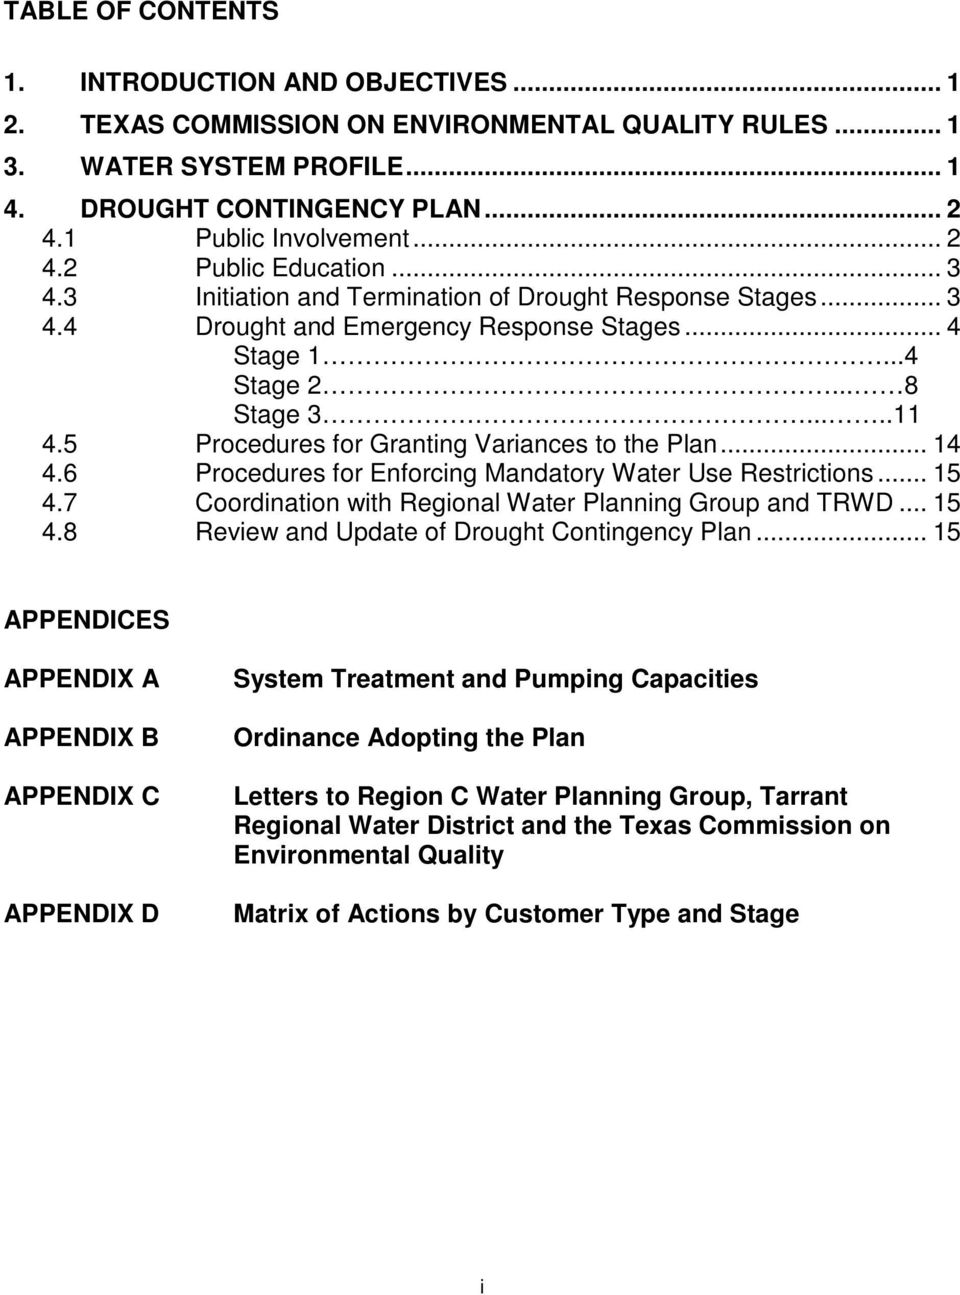 5 Procedures for Granting Variances to the Plan... 14 4.6 Procedures for Enforcing Mandatory Water Use Restrictions... 15 4.7 Coordination with Regional Water Planning Group and TRWD... 15 4.8 Review and Update of Drought Contingency Plan.